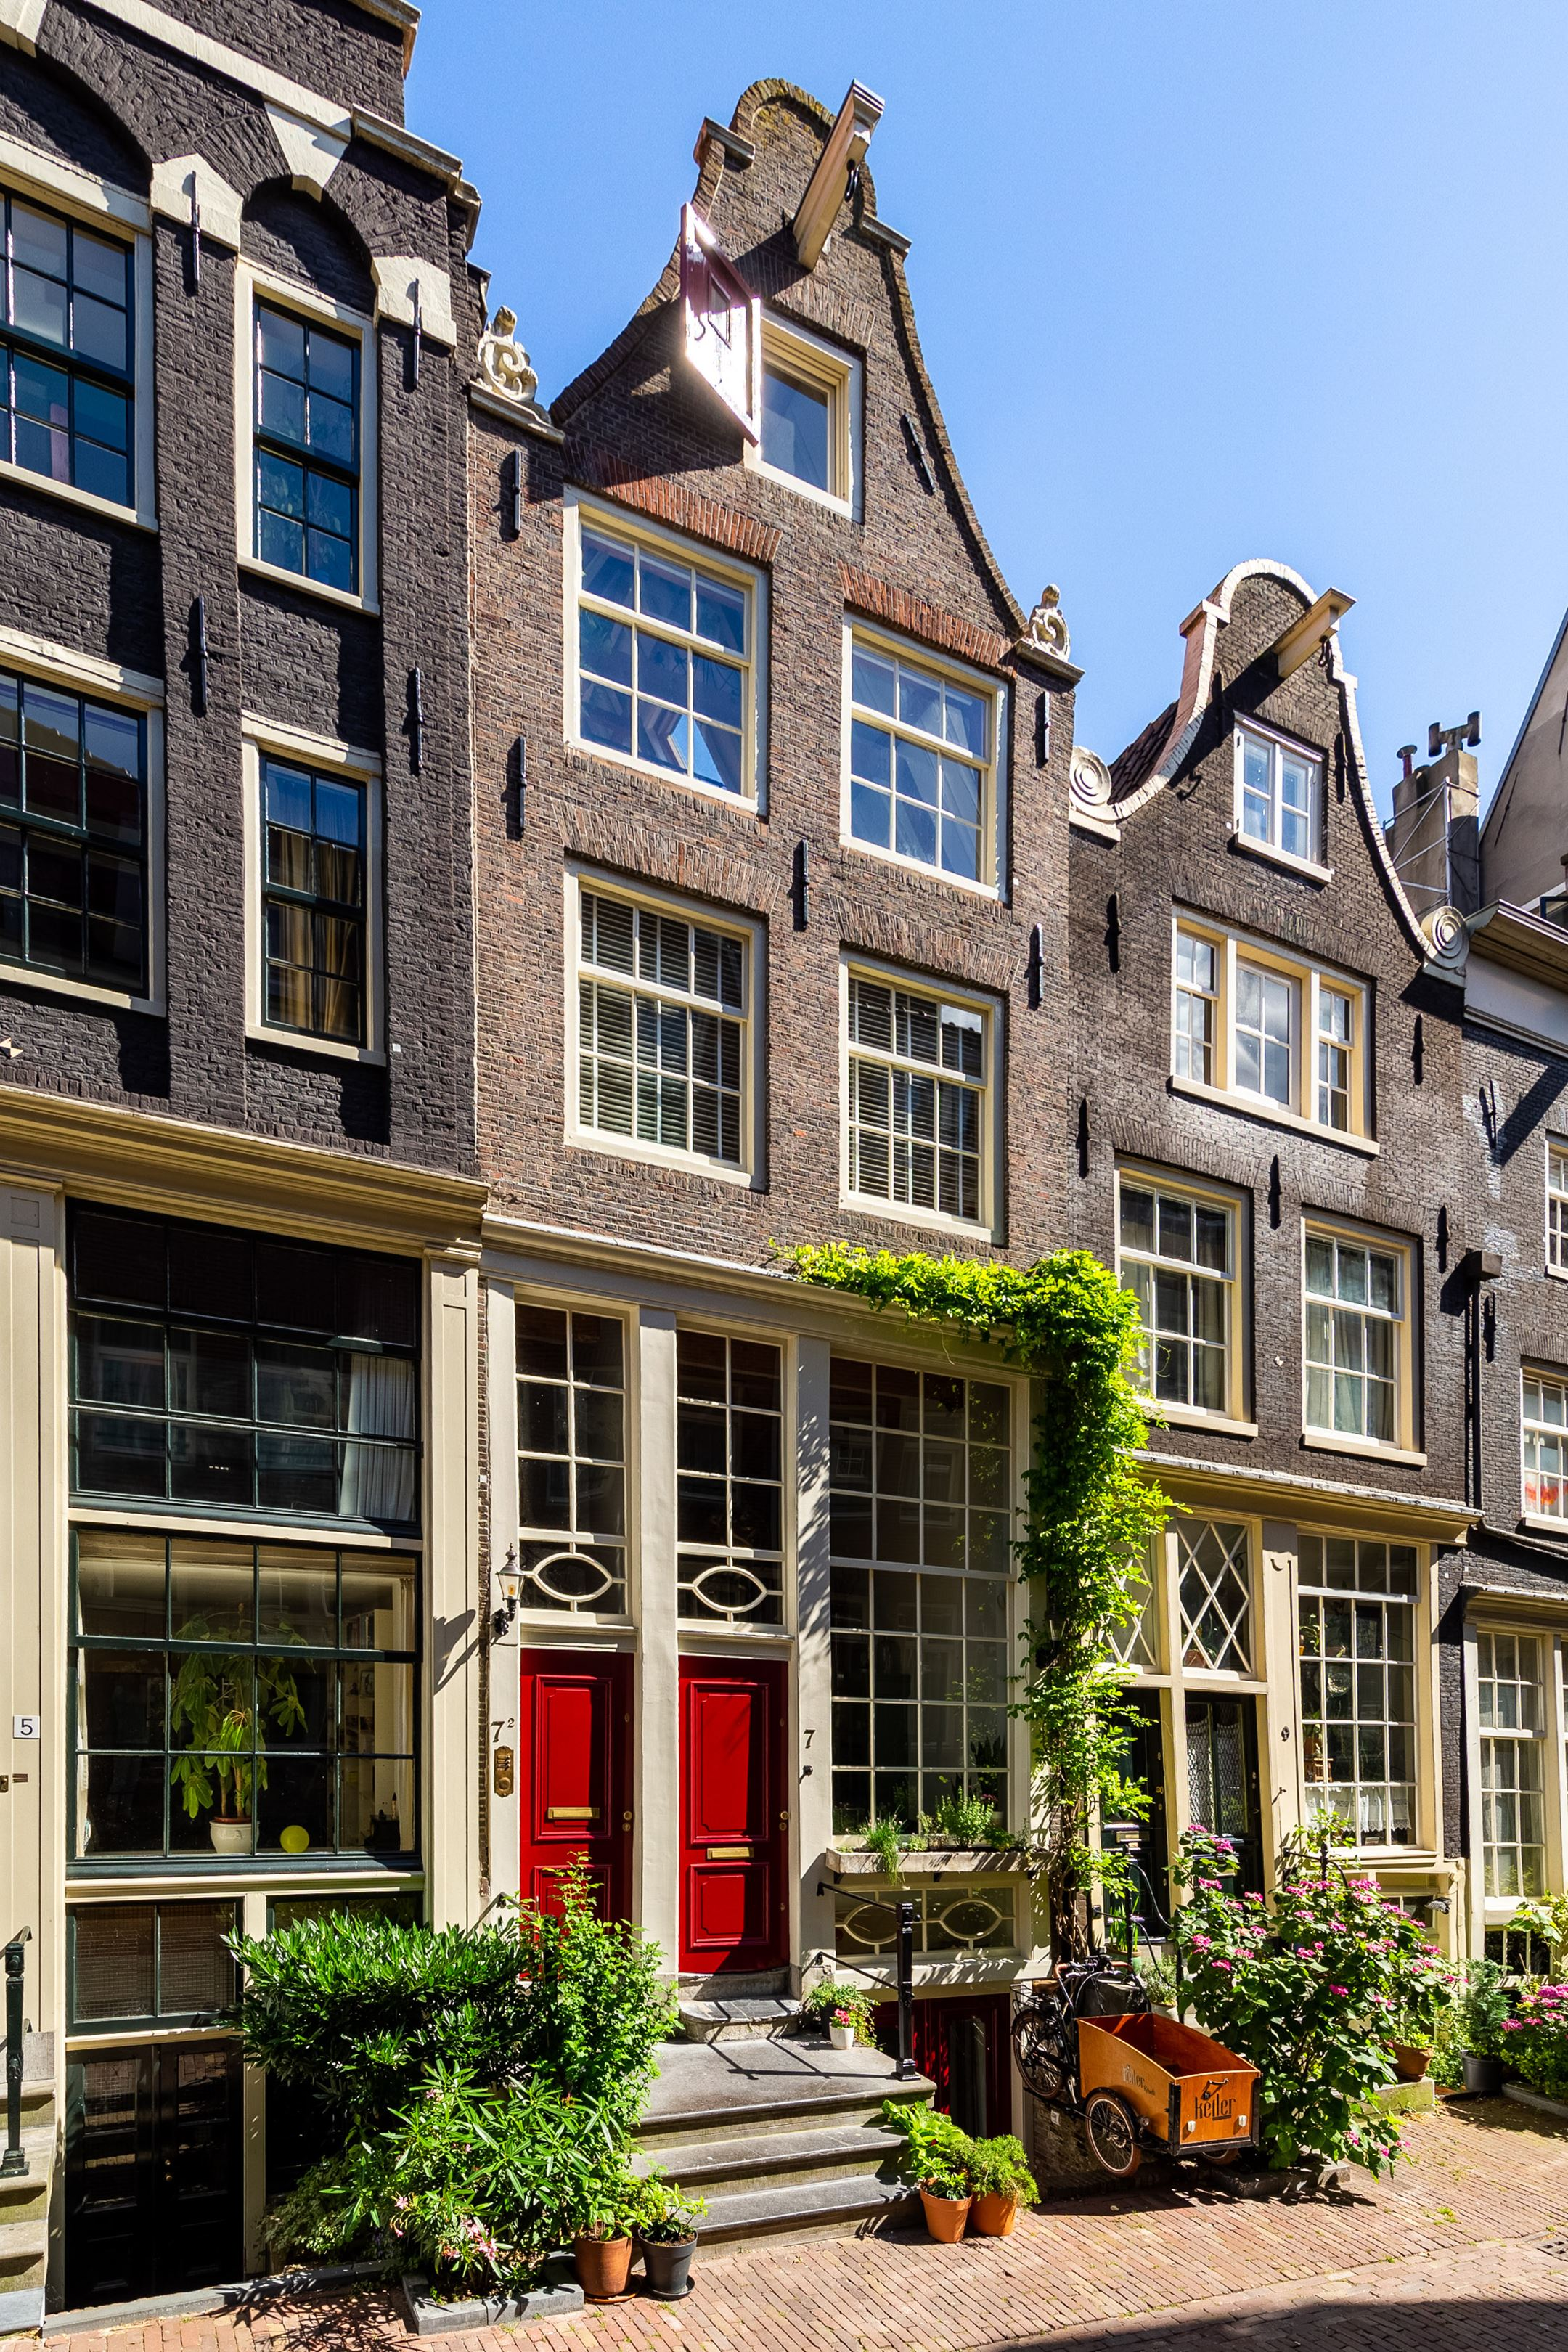 The Nordroom - A Characteristic 17th-Century Home in Amsterdam